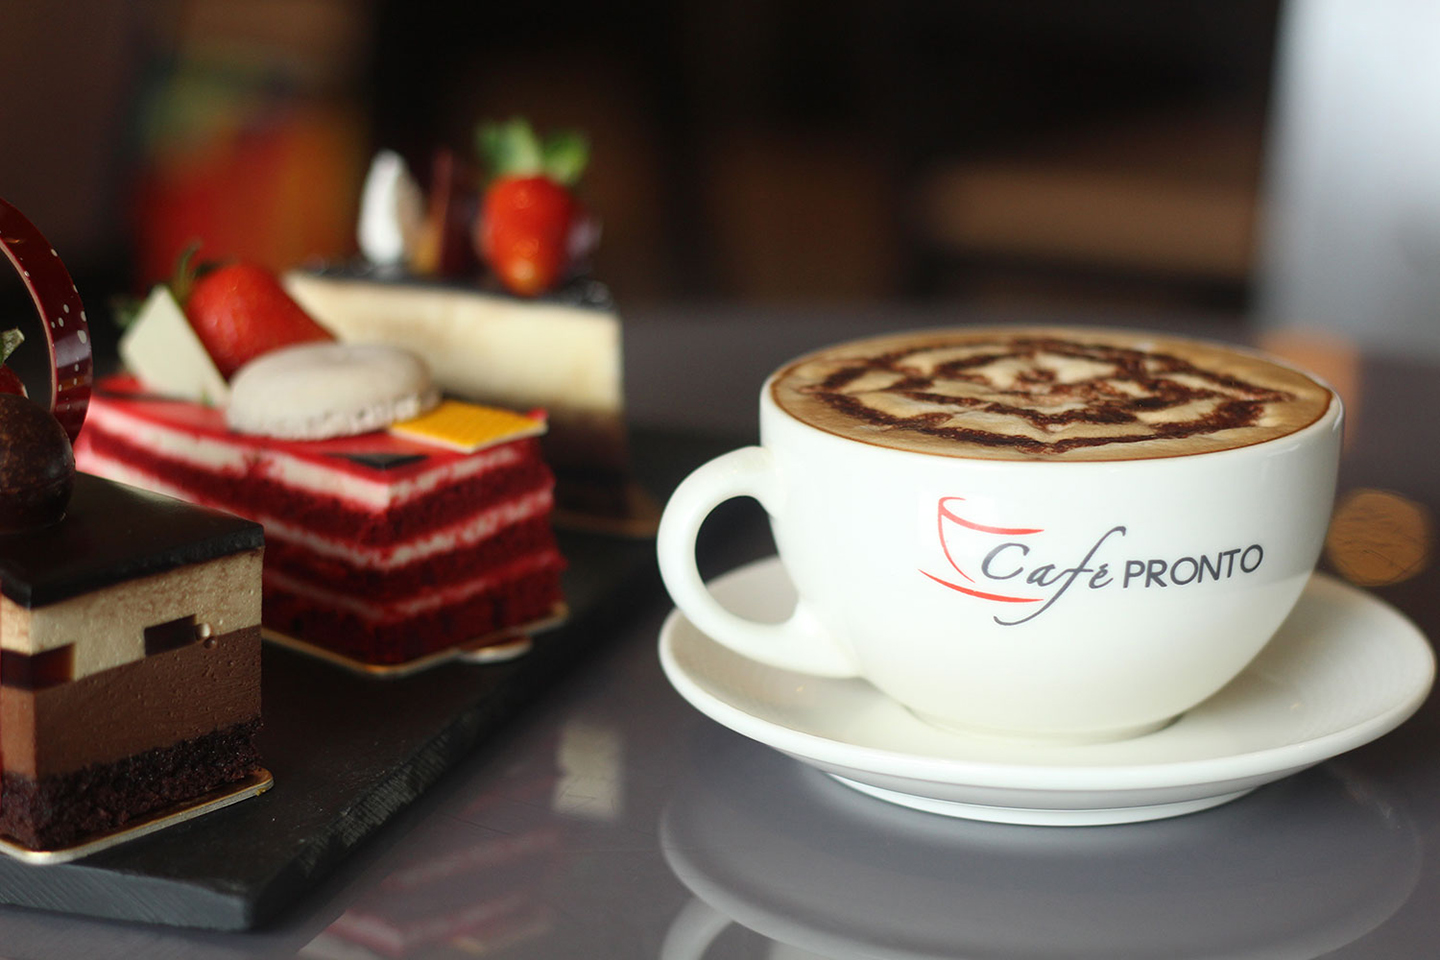 Cakes and coffee--perfect combination at Marco Polo Ortigas Manila's Cafe Pronto